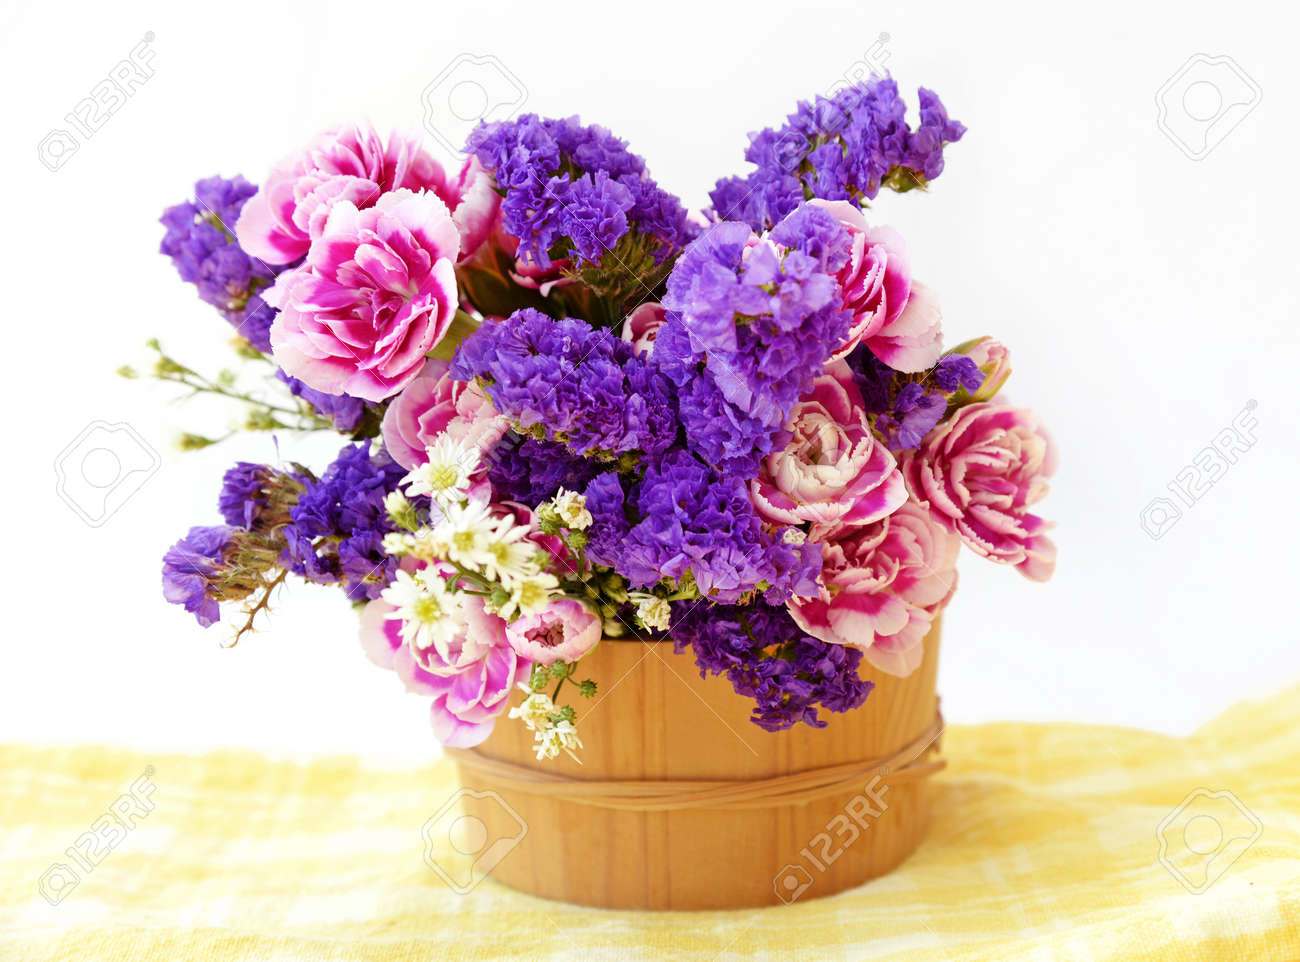 Bunch Pink And Blue Flowers In Wooden Bucket Isolated On White Stock Photo Picture And Royalty Free Image Image 40575174